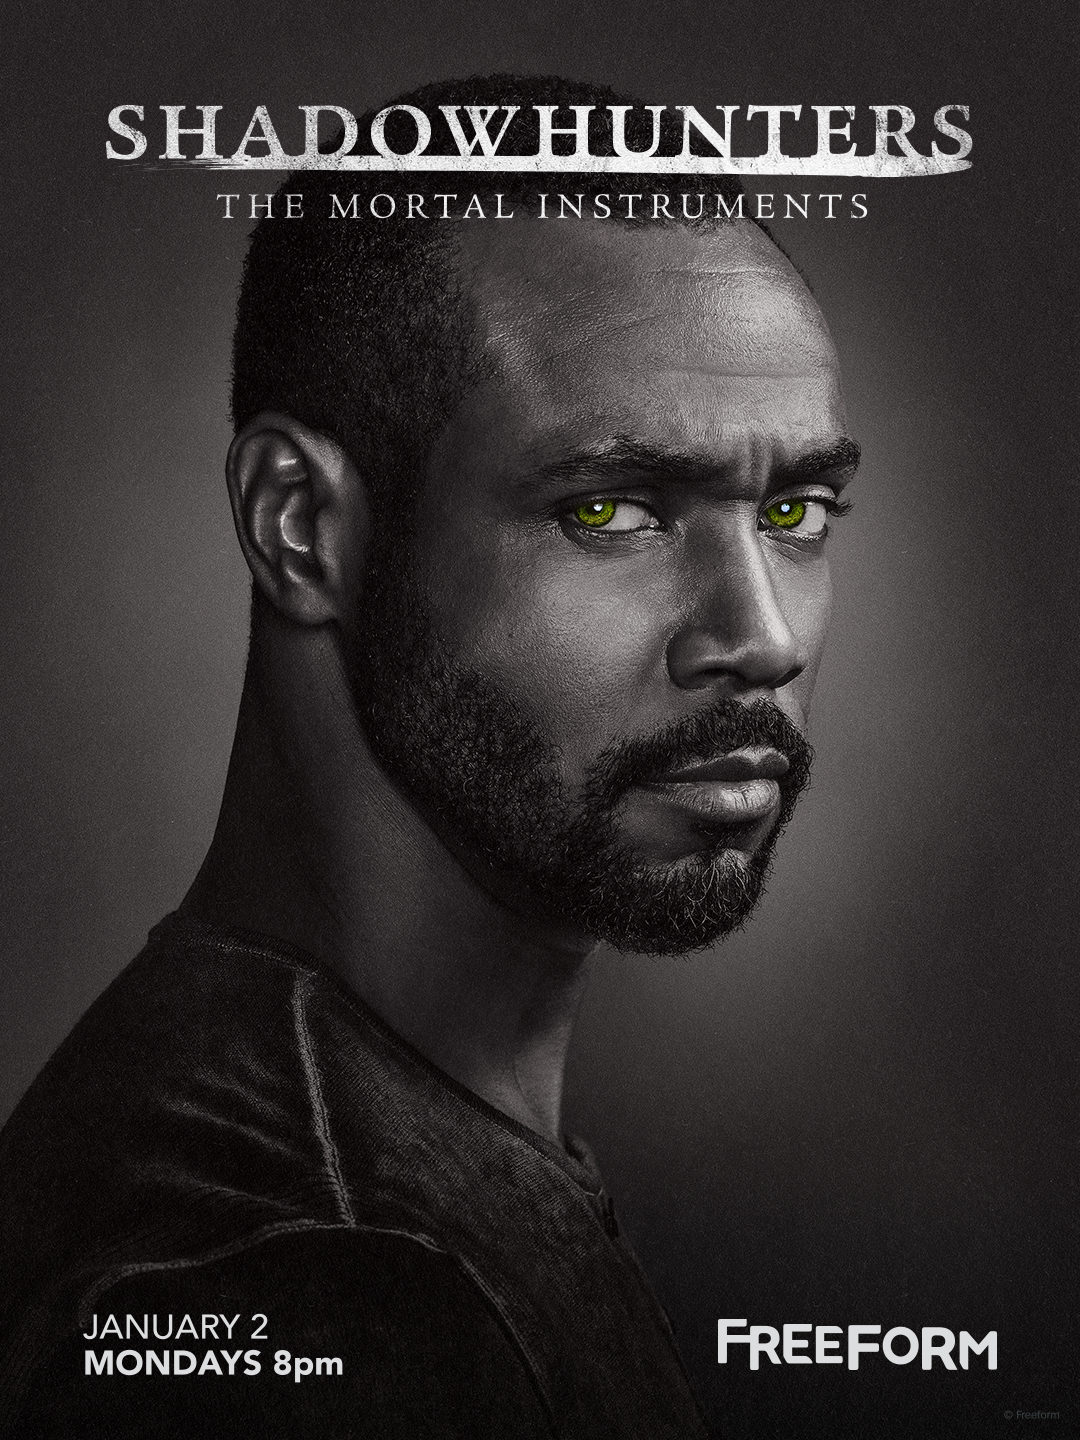 Shadowhunters - Unlock The Official Luke Poster For Season 2 By Tweeting Us With This Hashtag! - 1002